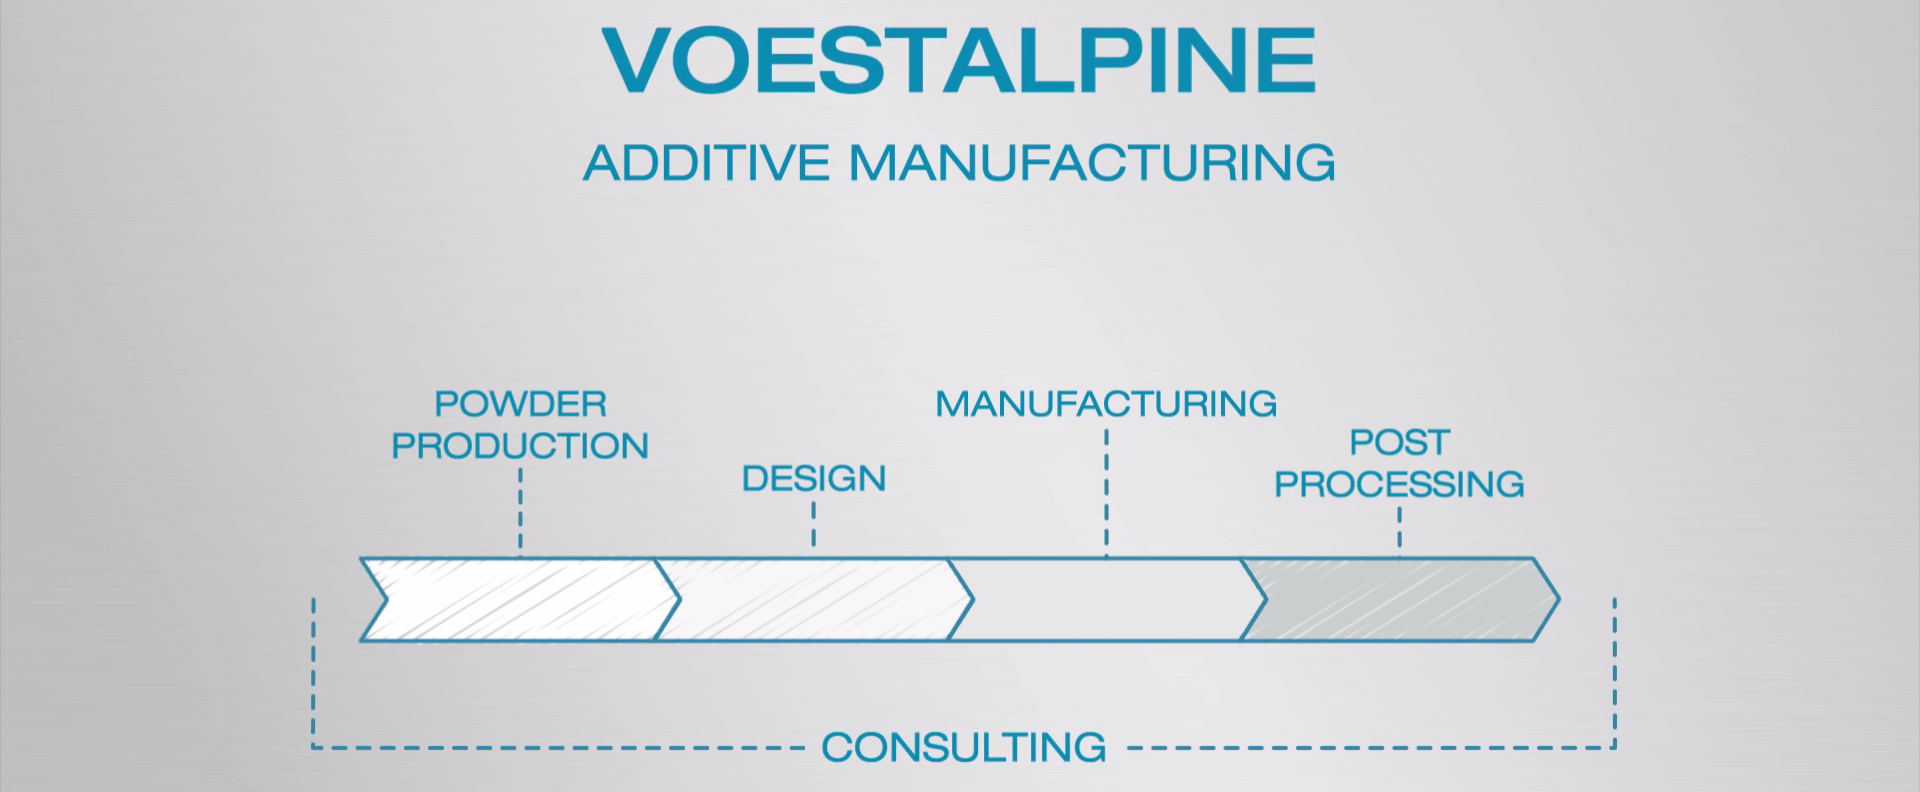 2017-05-08 13_34_33-Additive Manufacturing Center – voestalpine Edelstahl GmbH